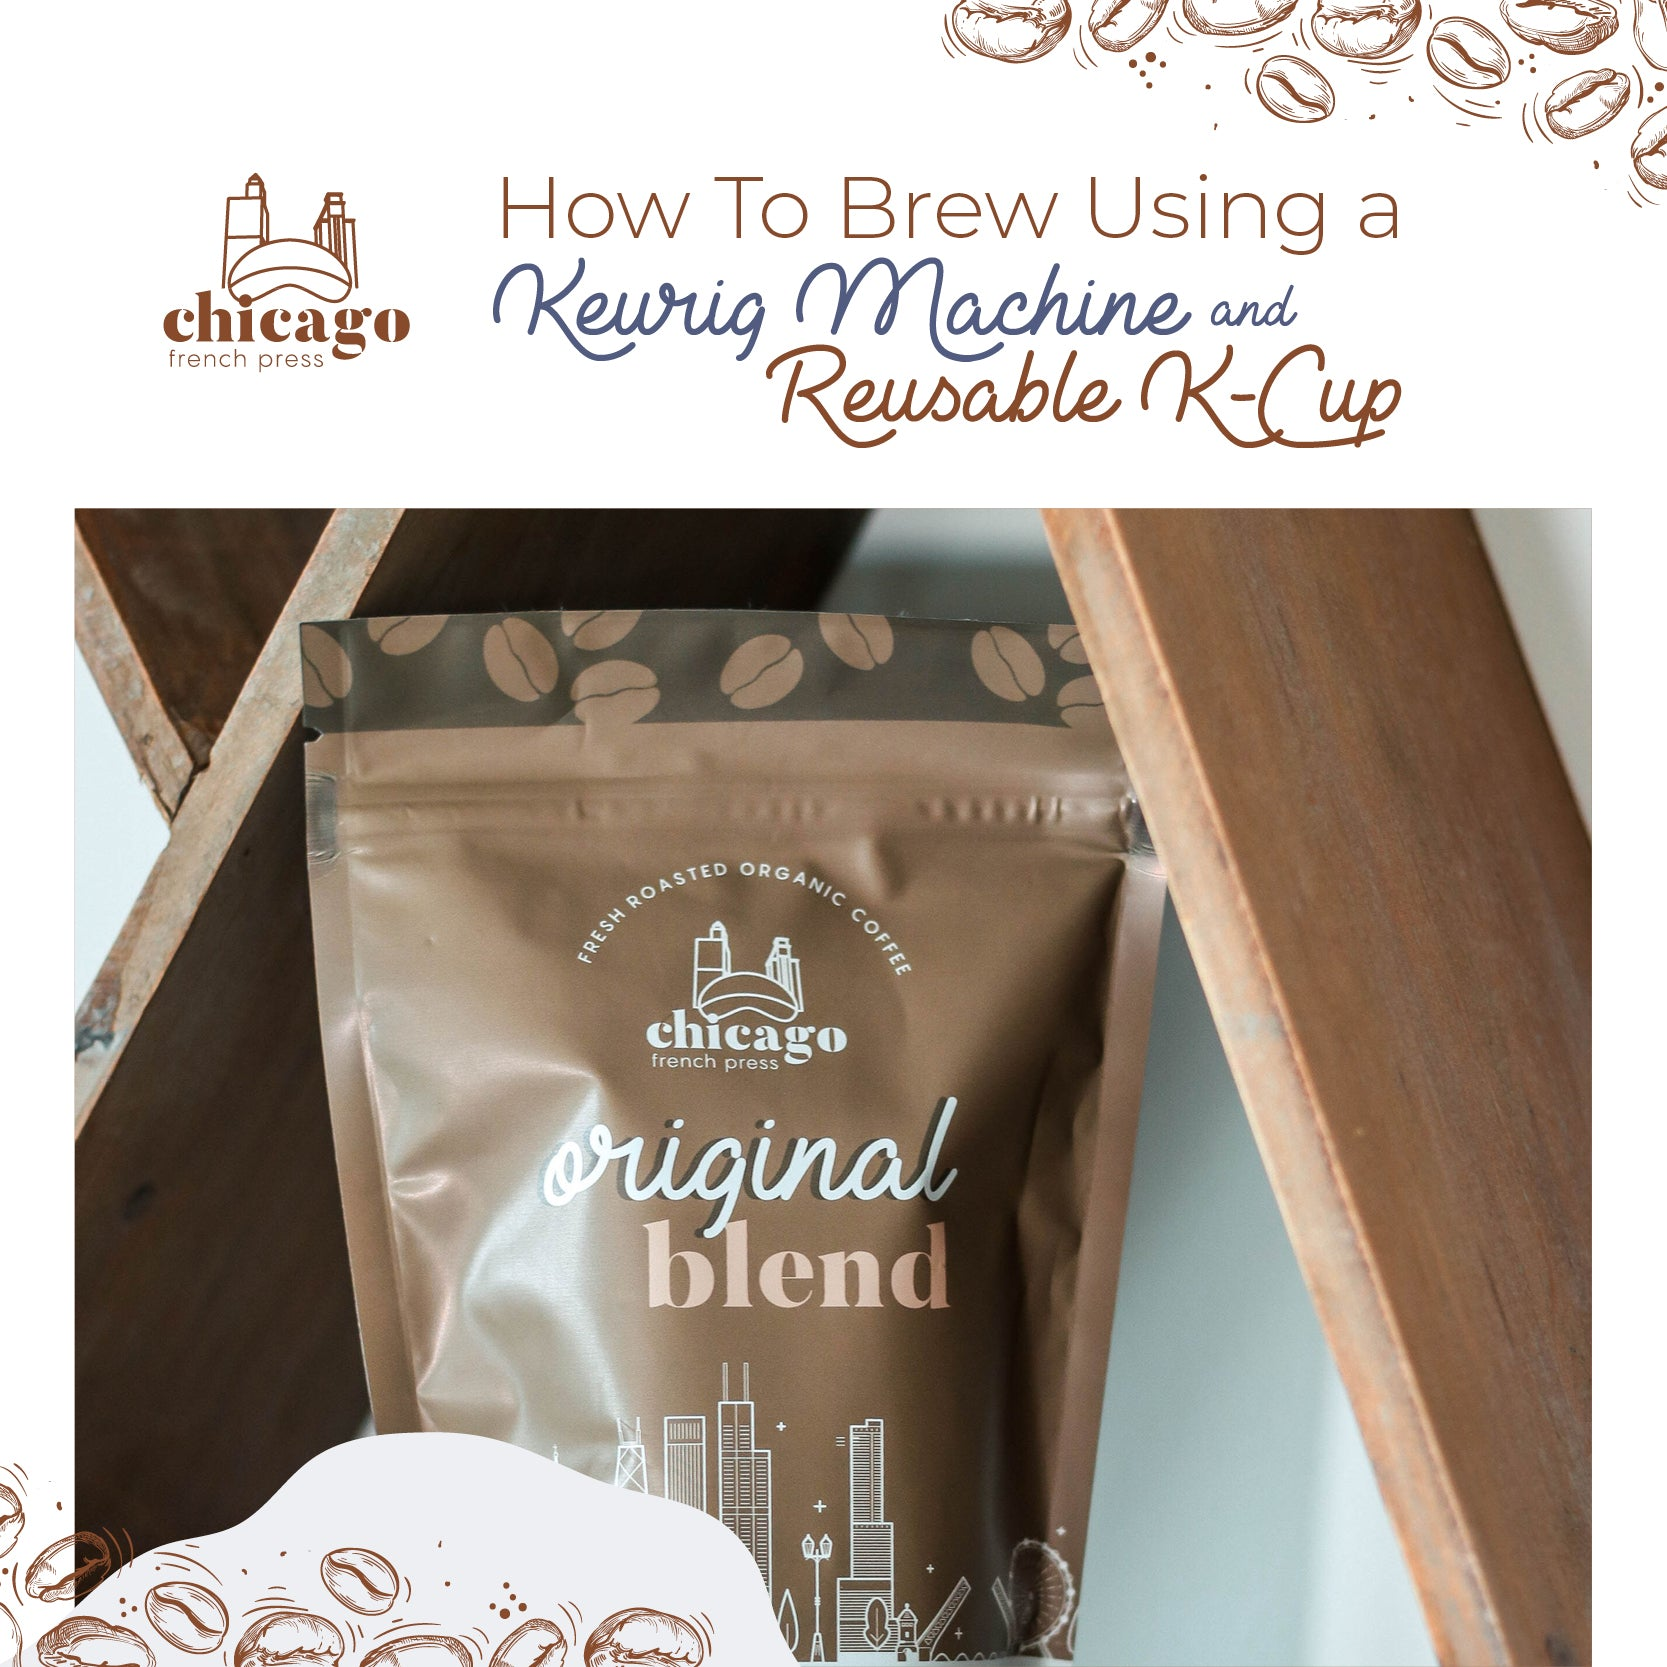 How to Brew CFP Coffee Using Keurig and Reusable K Cup